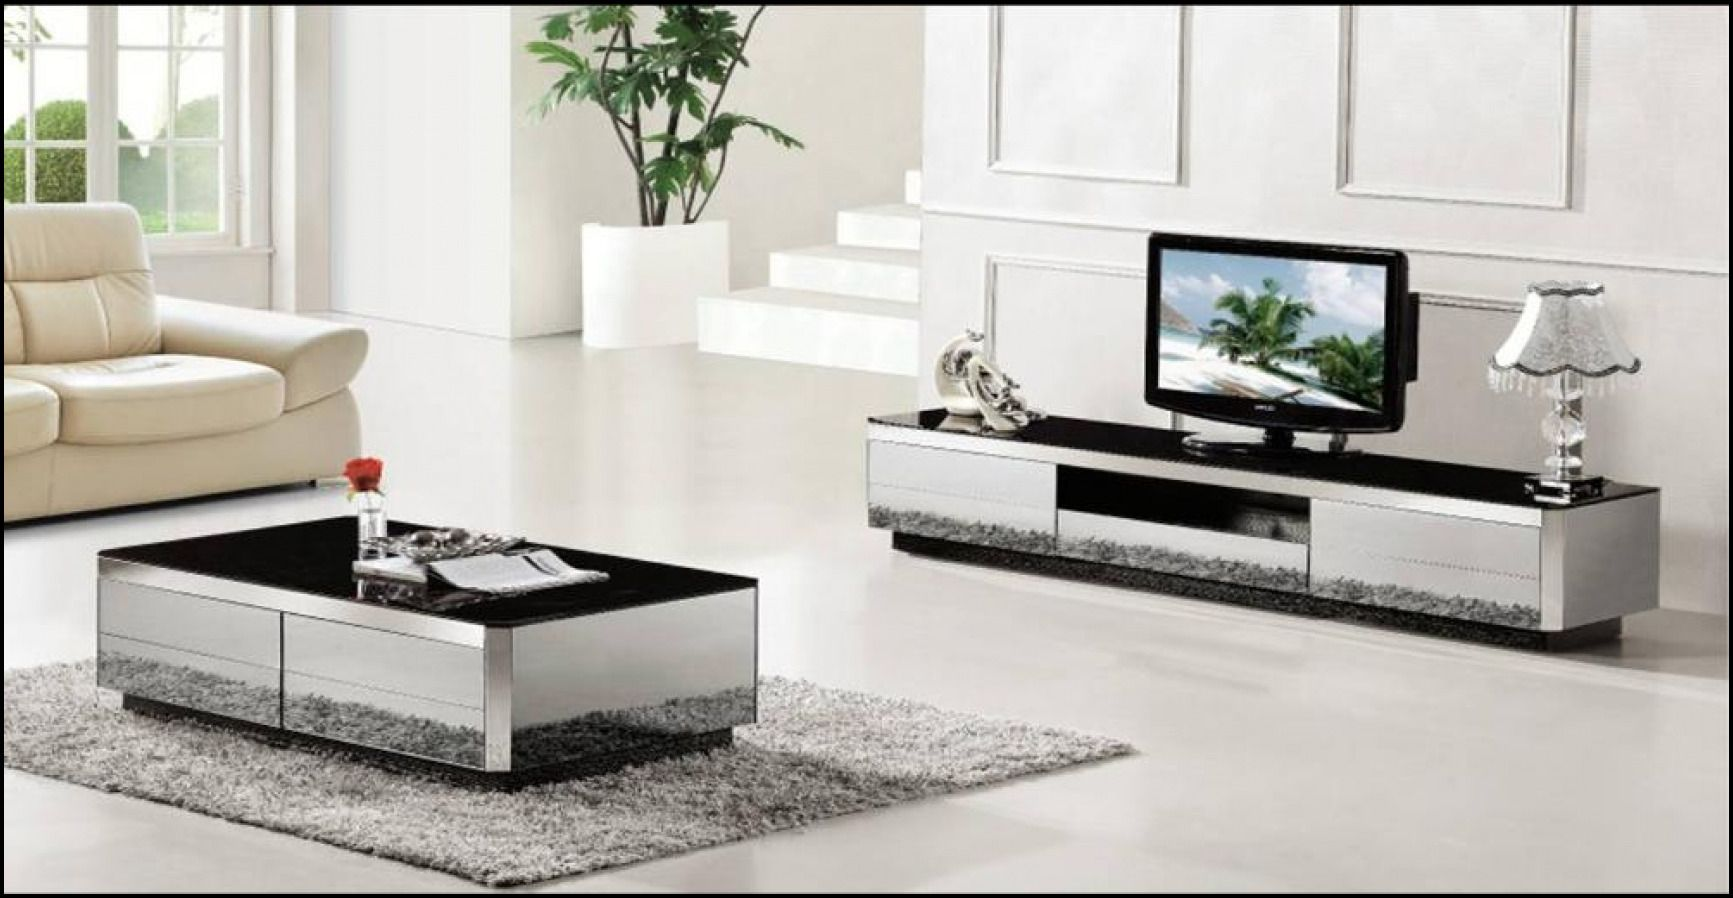 Tv Stand And Coffee Table Set,black Tv Stand And Coffee Table Set,glass Tv  Stand And Coffee Table Set,modern Tv Stand And Coffee Table Set,modern Tv  Stand ...